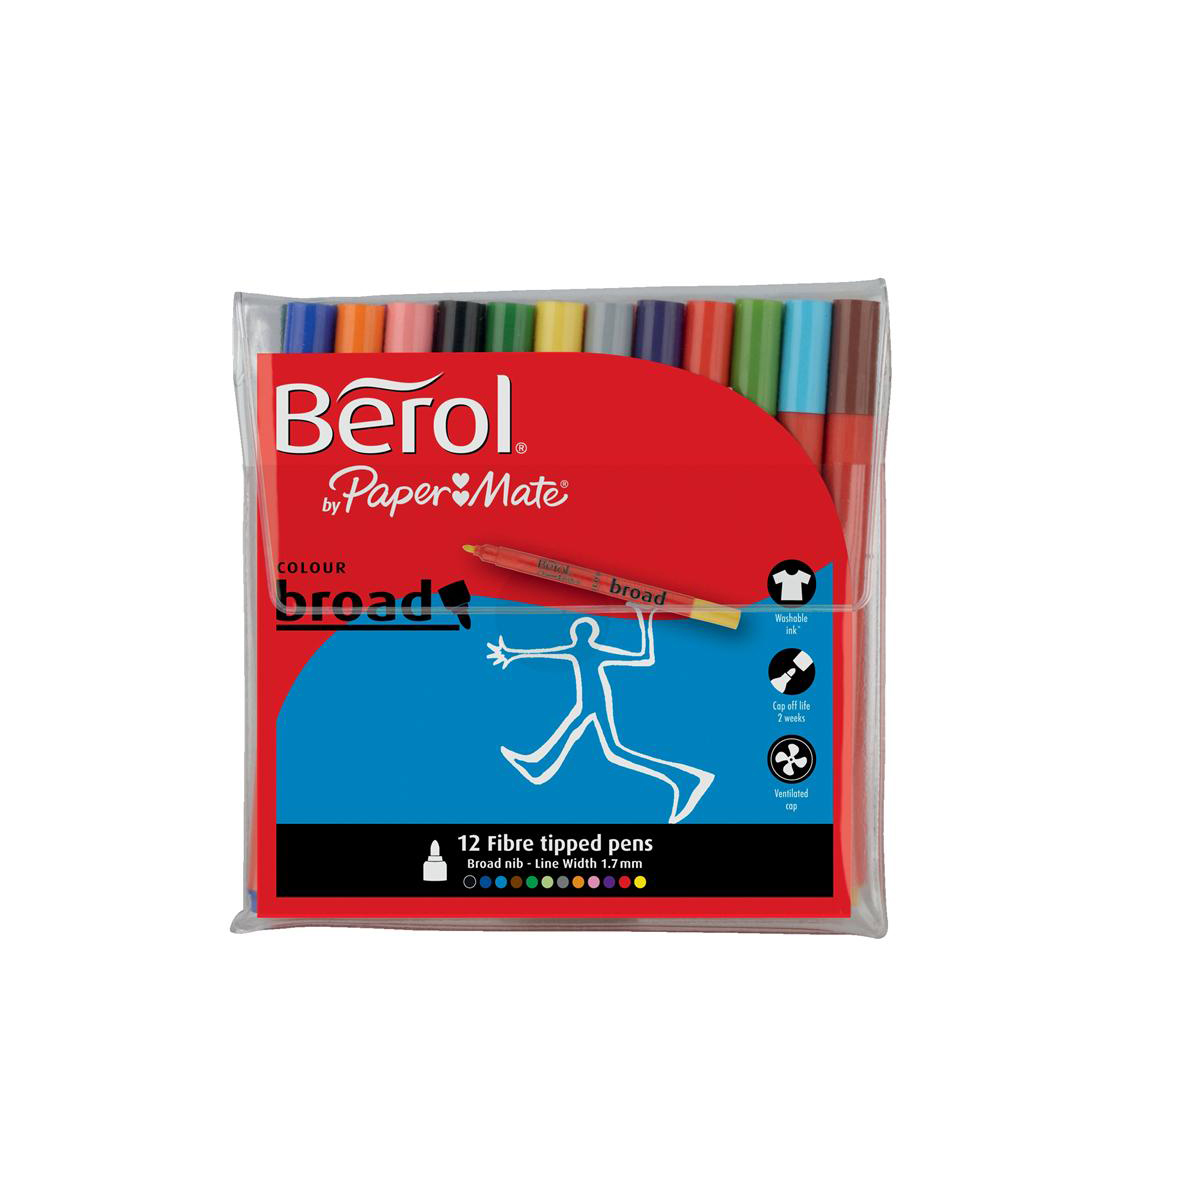 Berol Colour Broad Pens with Washable Ink 1.7mm Line Wallet Assorted Ref 2057596 Pack 12